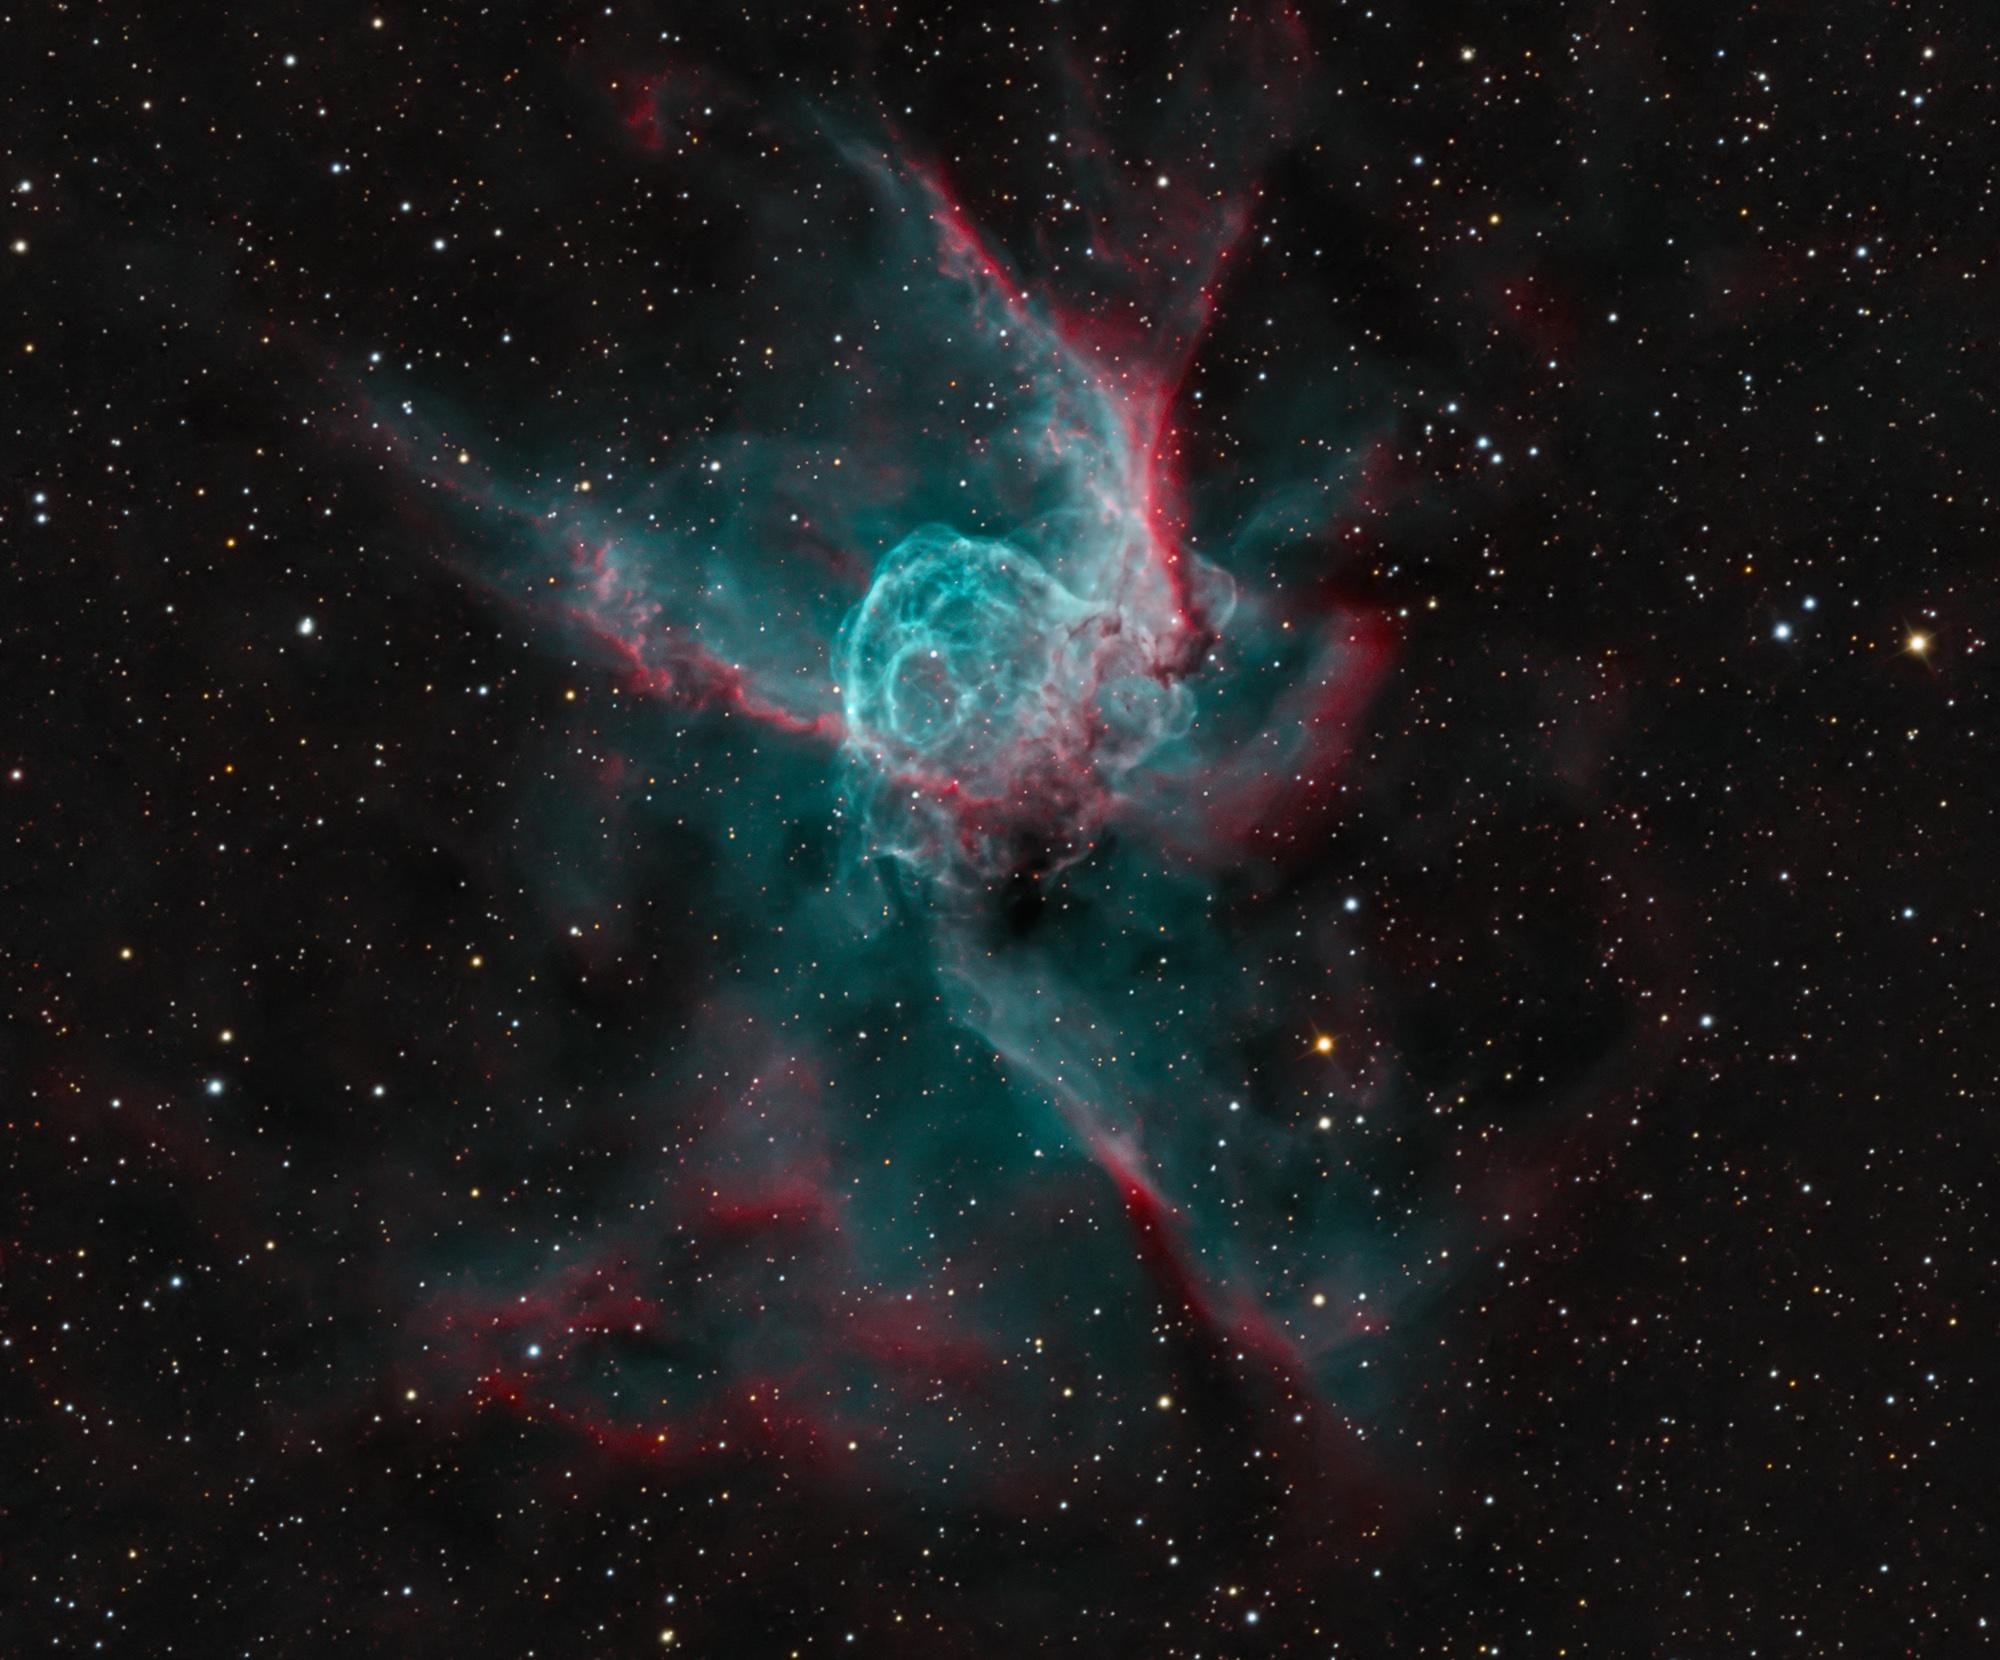 Thor's Helmet - A 30 light year wide bubble of oxygen